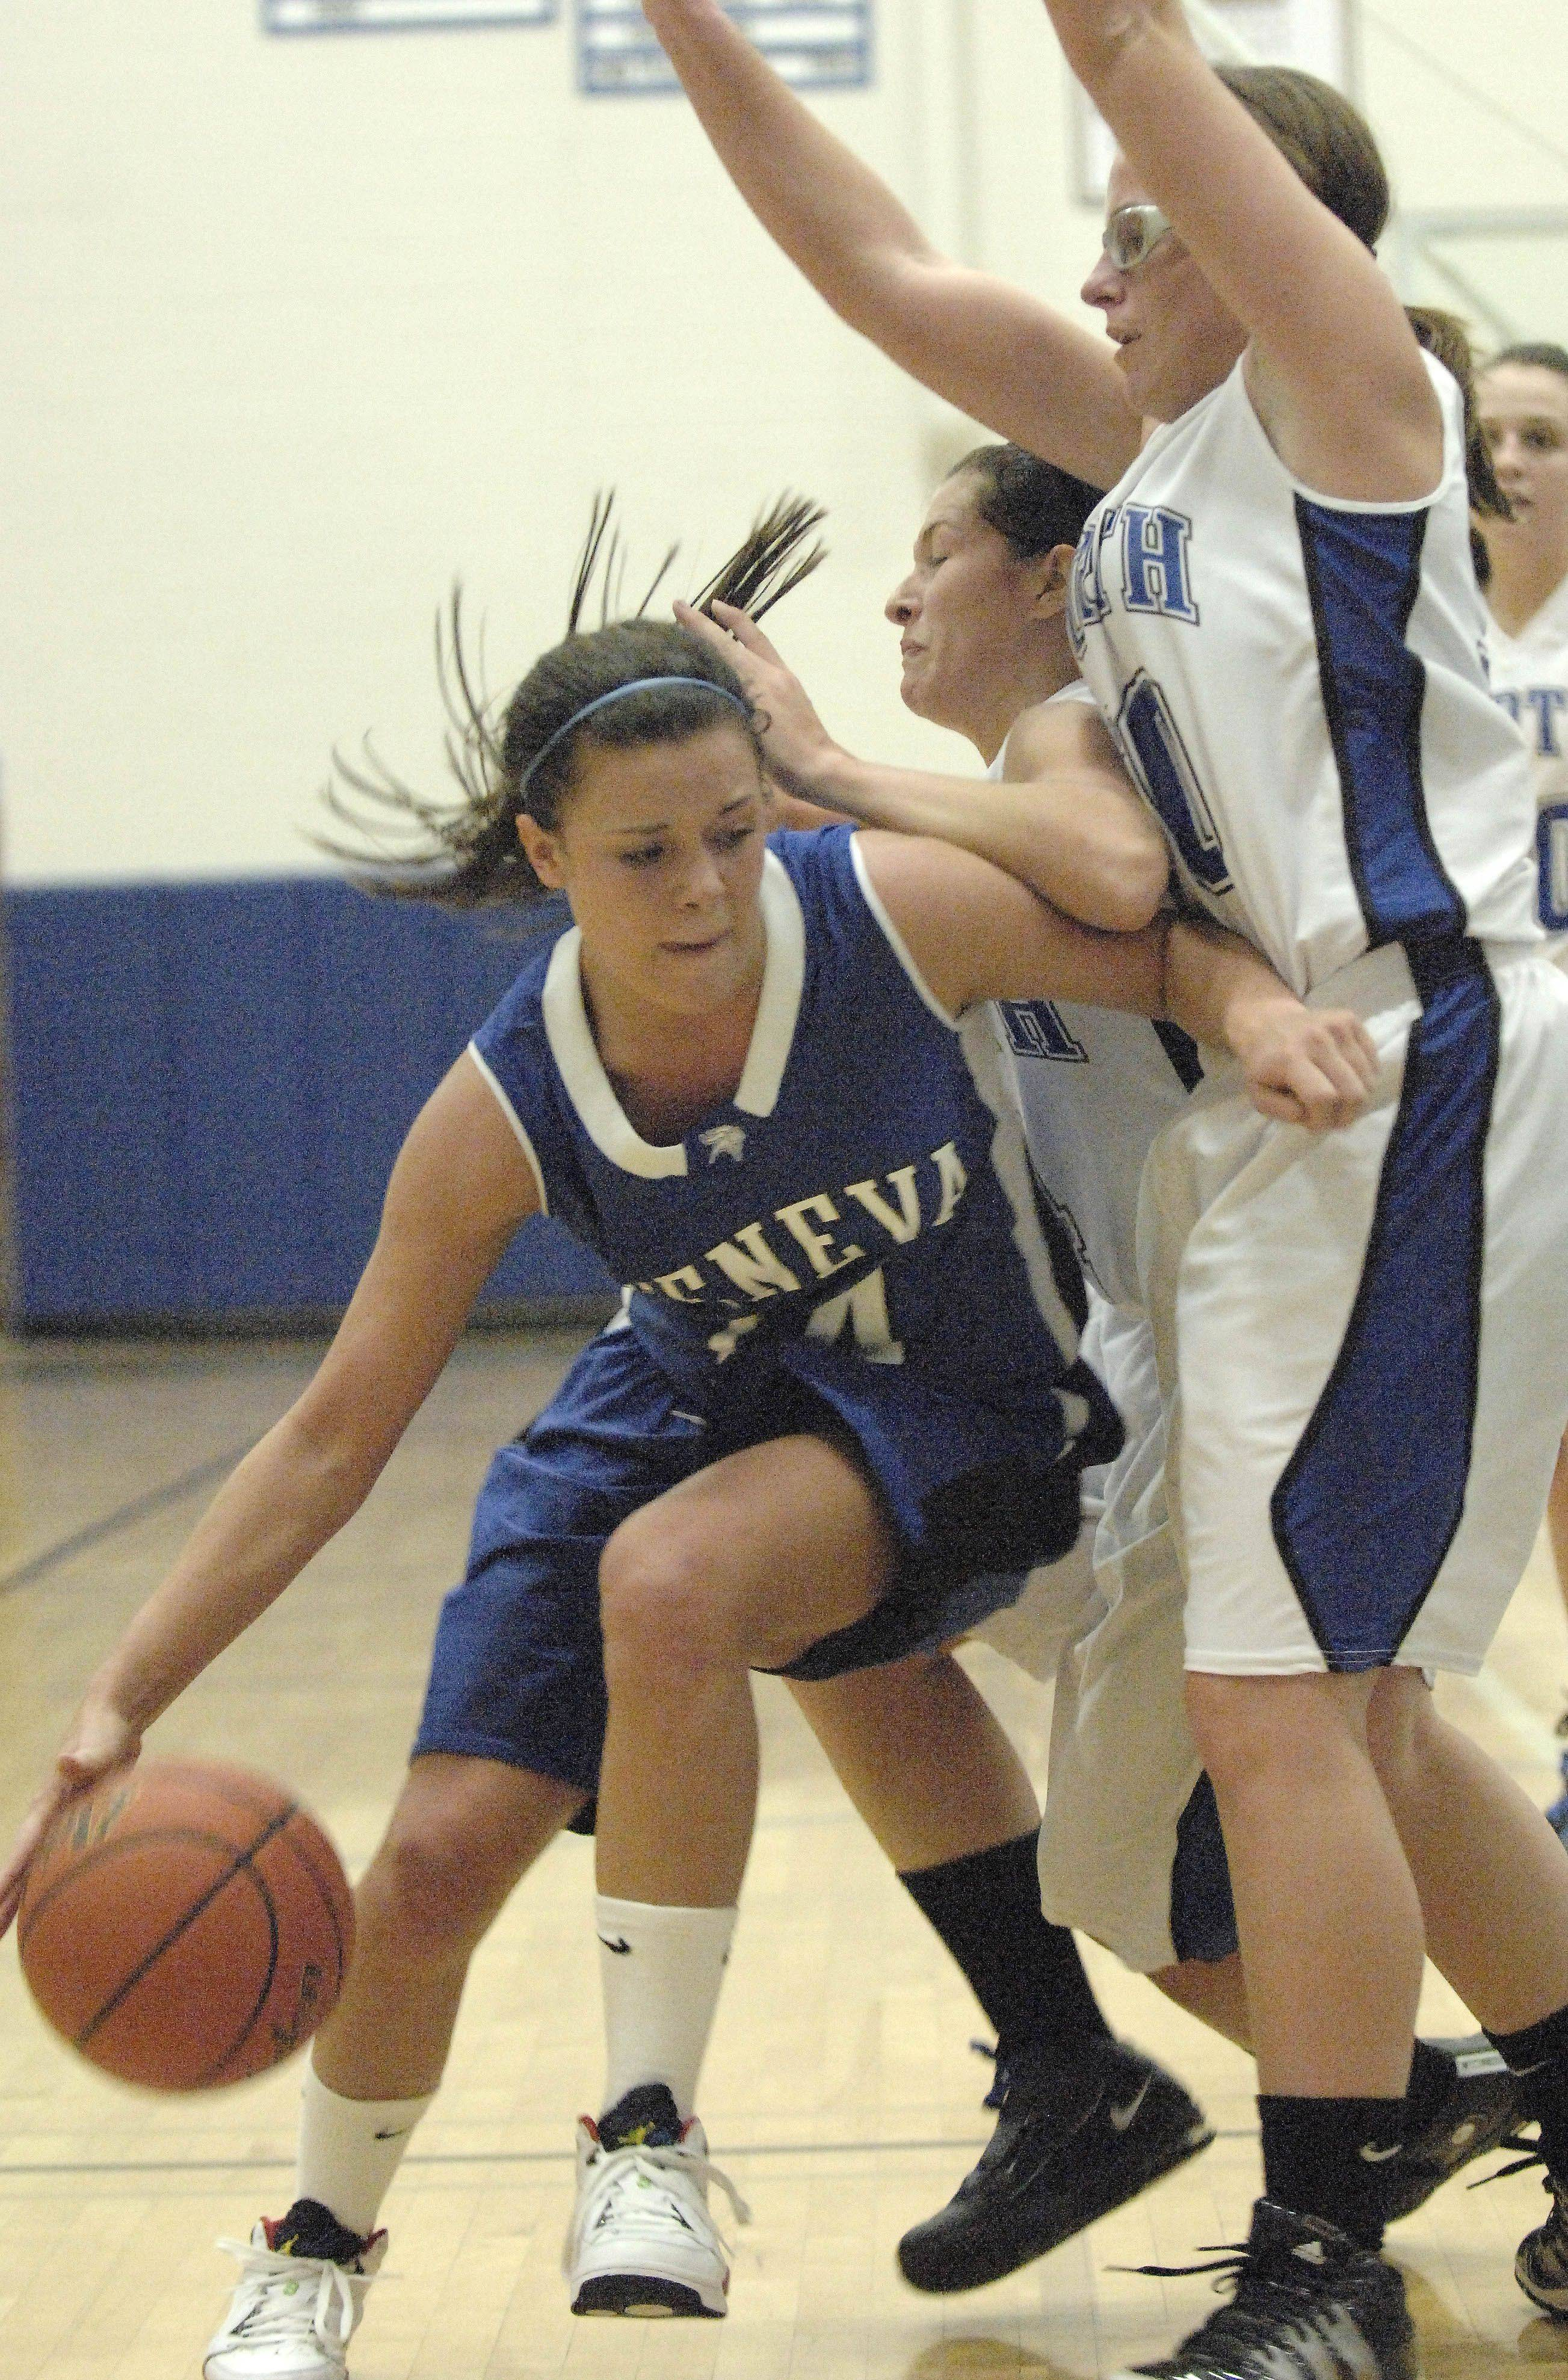 Images from the Geneva vs. St. Charles North girls basketball game Tuesday, November 30, 2010.